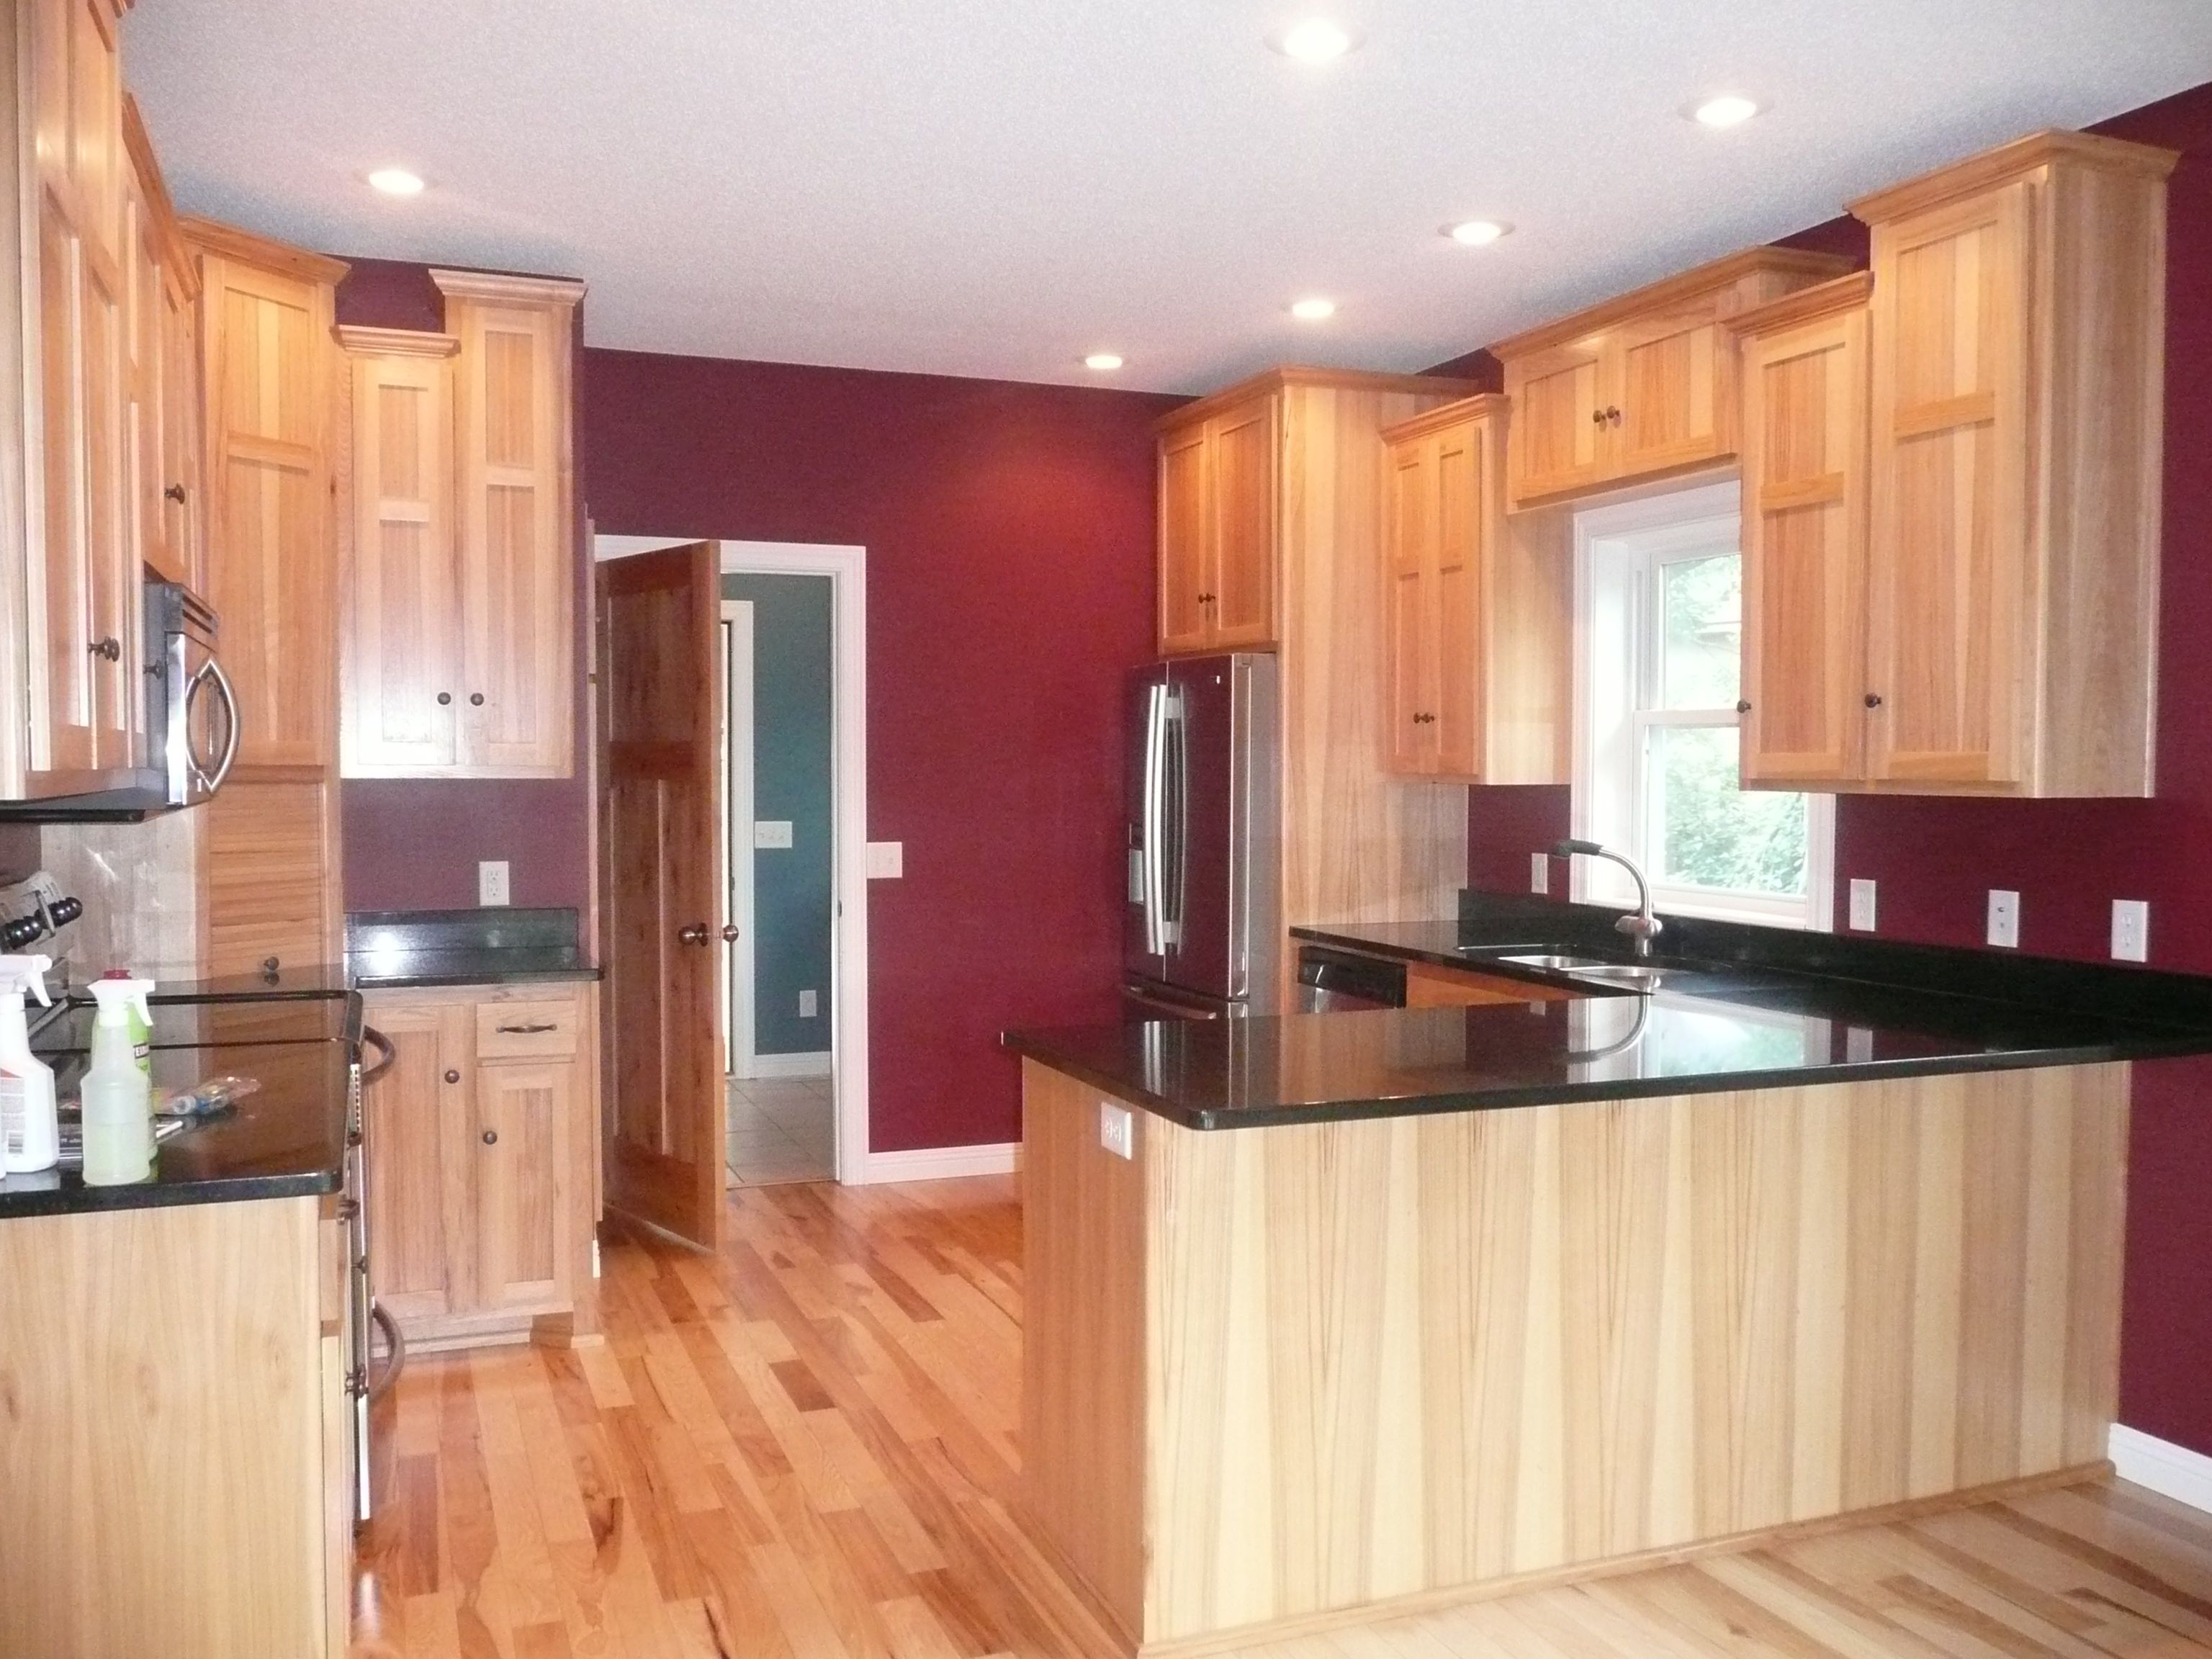 kitchen hickory kitchen cabinets Kitchen Hickory cabinets and floor Granite Countertop